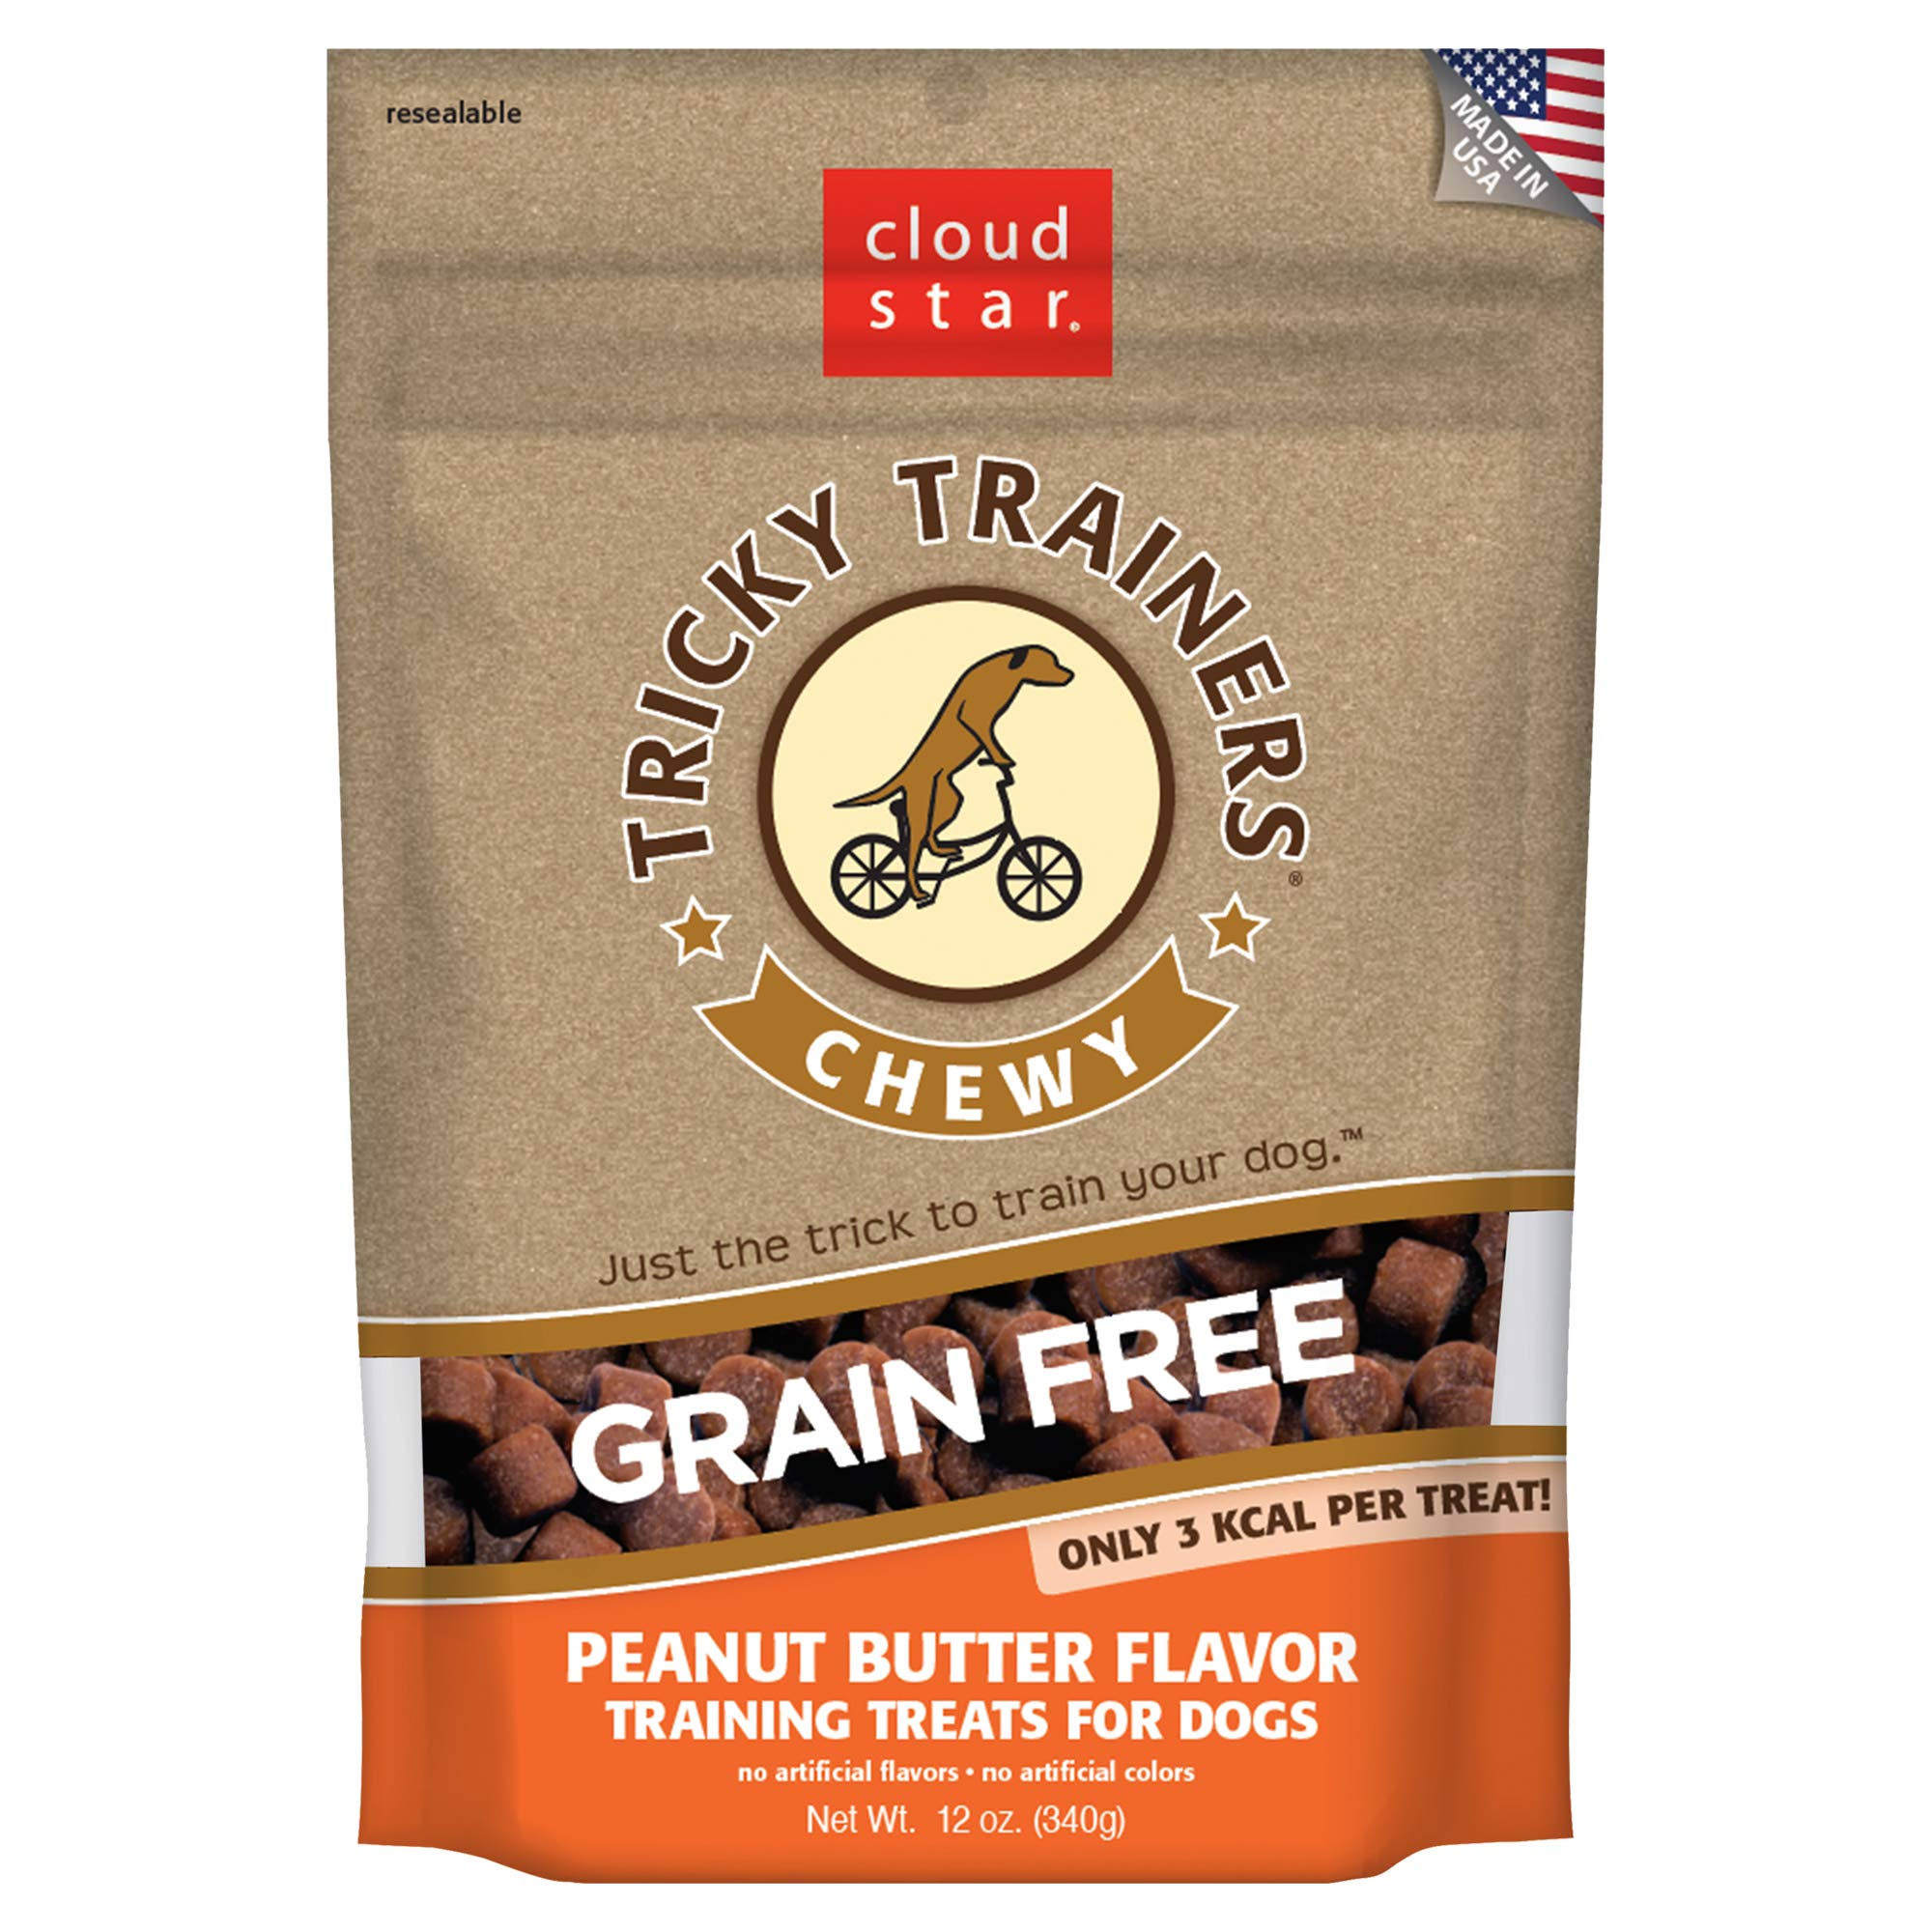 Cloud Star Tricky Trainers Chewy Grain Free Peanut Butter - 12 oz